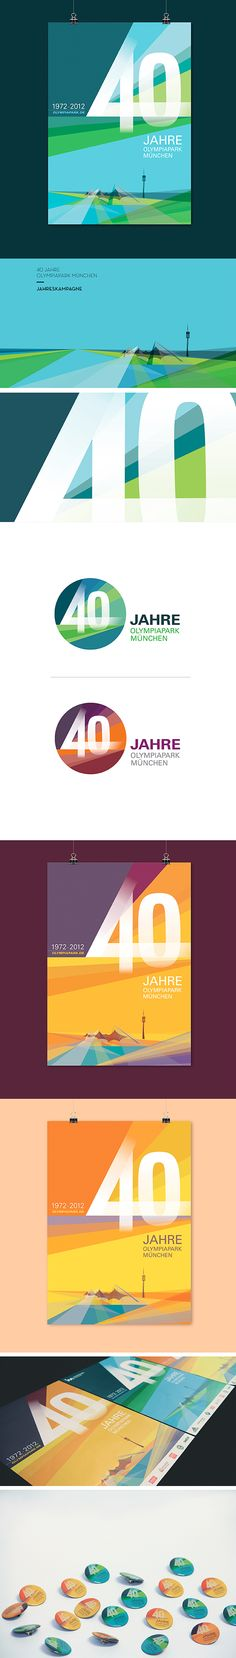 Design of a key visual on the occasion of the 40th anniversary as the annual campaign. Application to posters, advertisements, outdoor advertising, giveaways, etc.